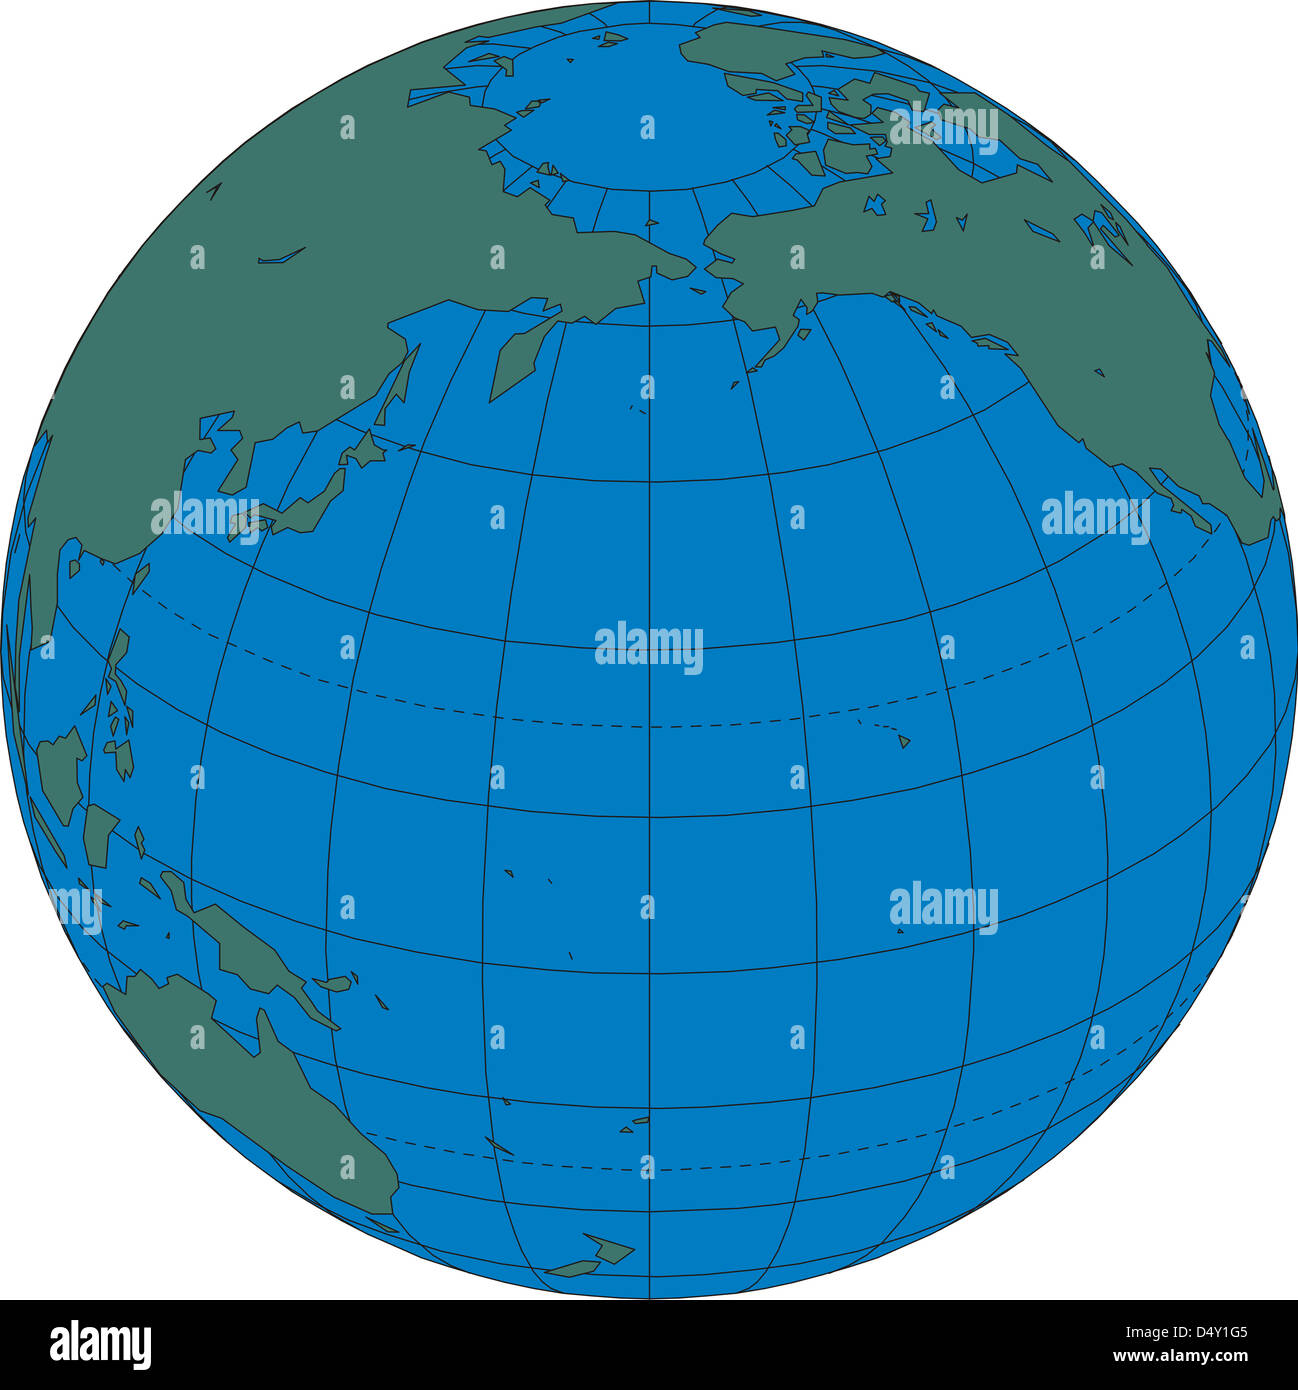 World Map Globe North Pacific Ocean Stock Photo Royalty Free - World map pacific ocean